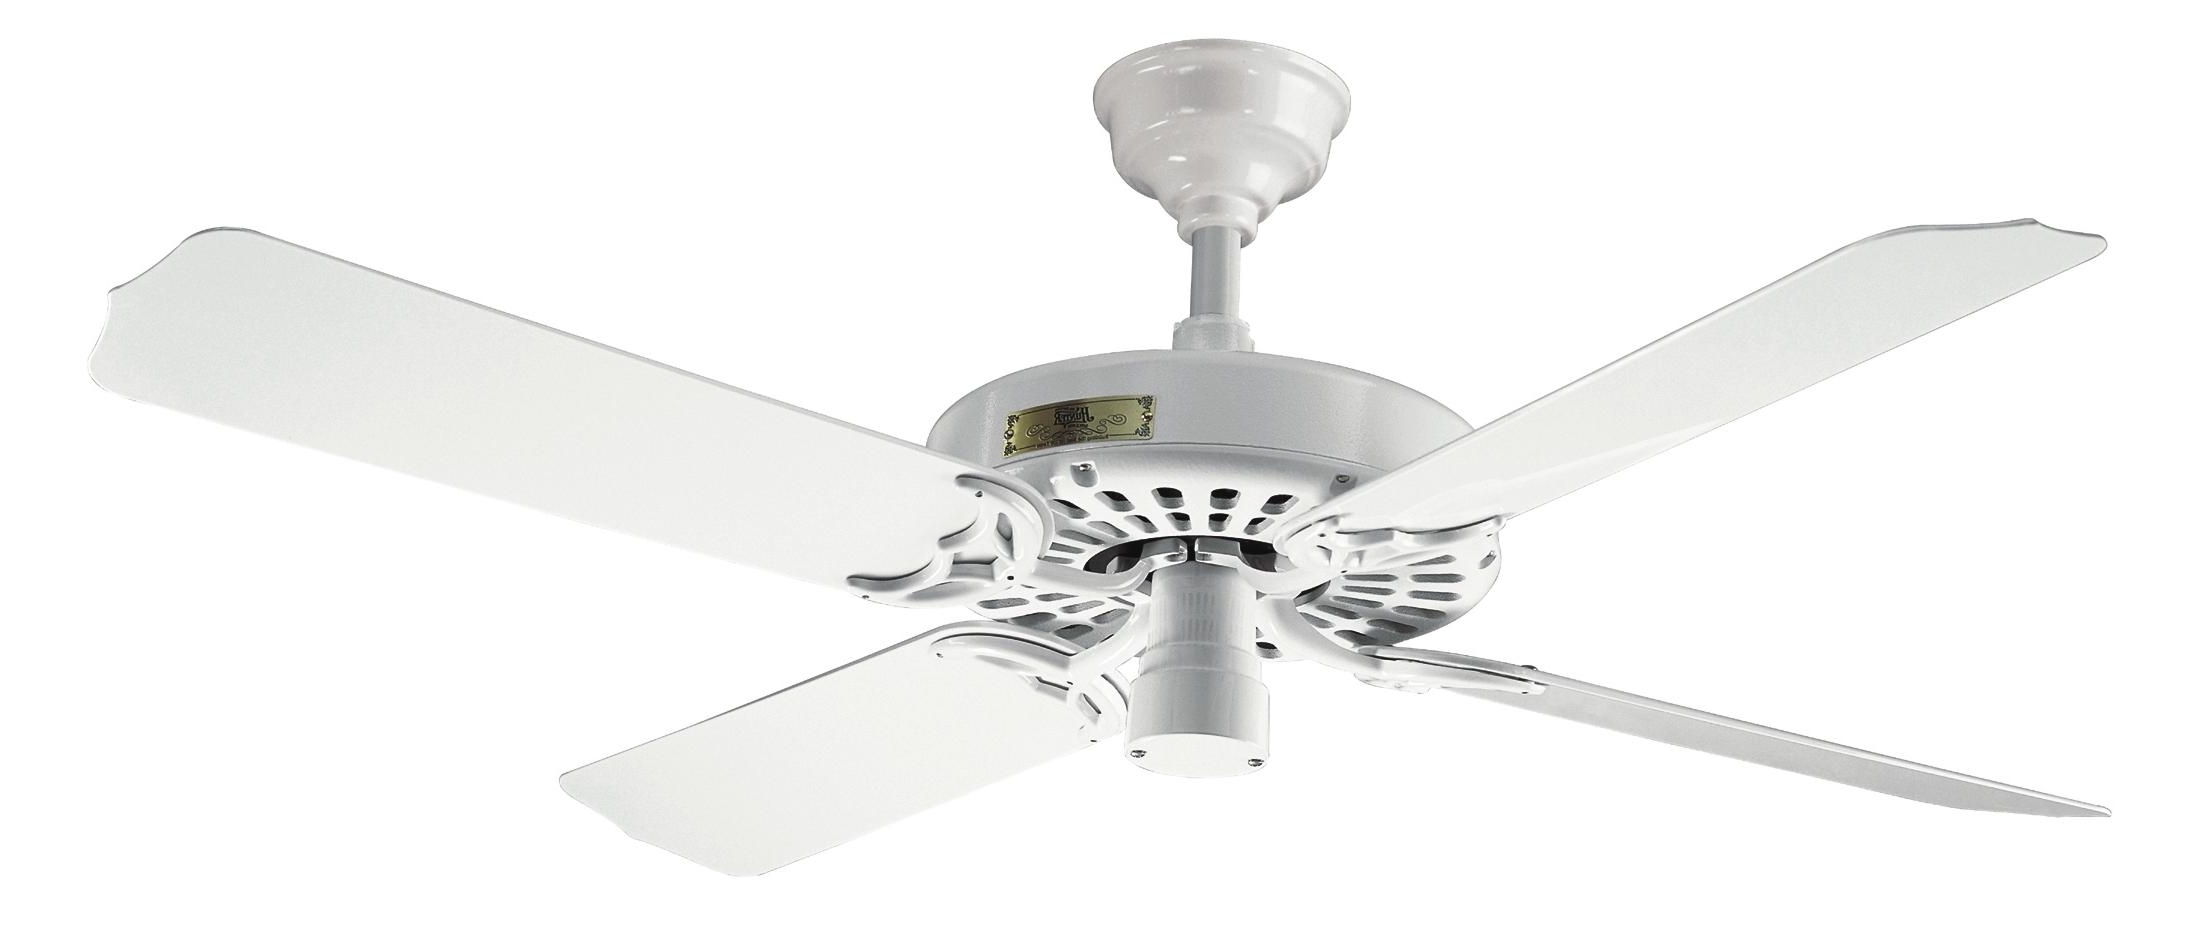 Hunter Outdoor Ceiling Fans With White Lights Intended For Latest Hunter Outdoor Original White Ceiling Fan 25602 In White, Best (View 15 of 20)